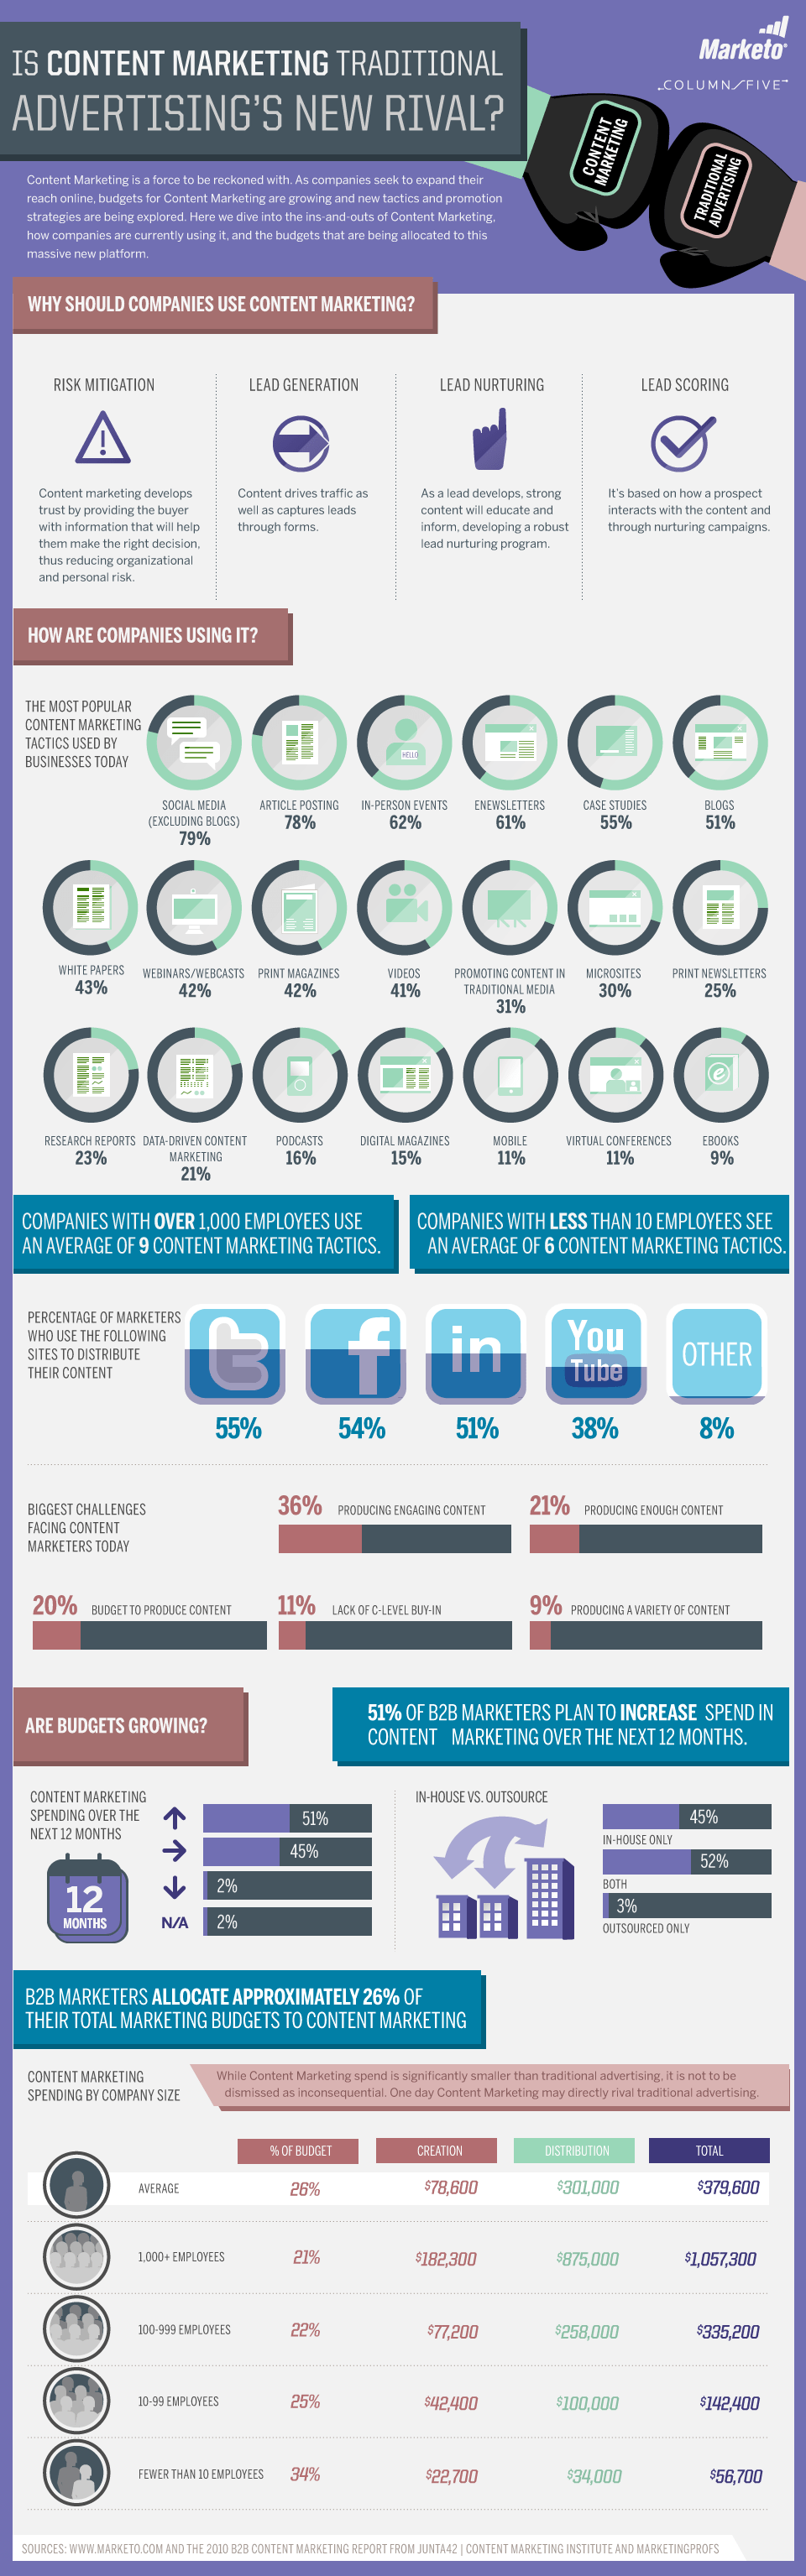 Is Content Marketing Traditional Advertising's New Rival? [Infographic]